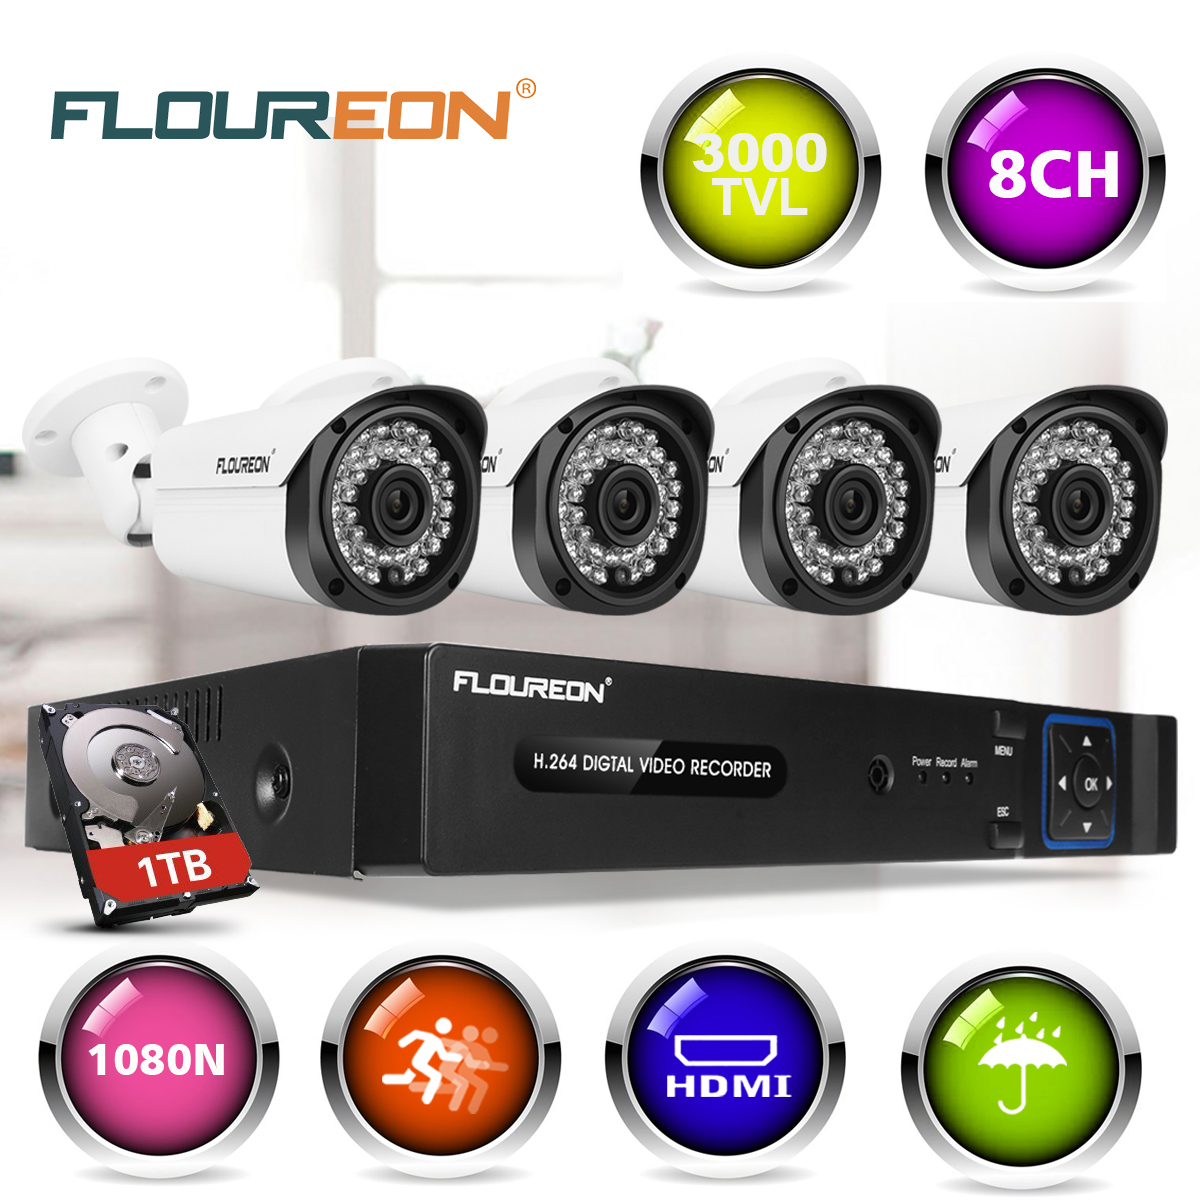 FLOUREON 8 Channel Security Camera System 5-in-1 1080P DVR with 1TB Surveillance Hard Disk Drive and (4) 3000TVL 2.0MP Weatherproof HD-TVI Bullet Cameras with IR-cut Night Vision LEDs